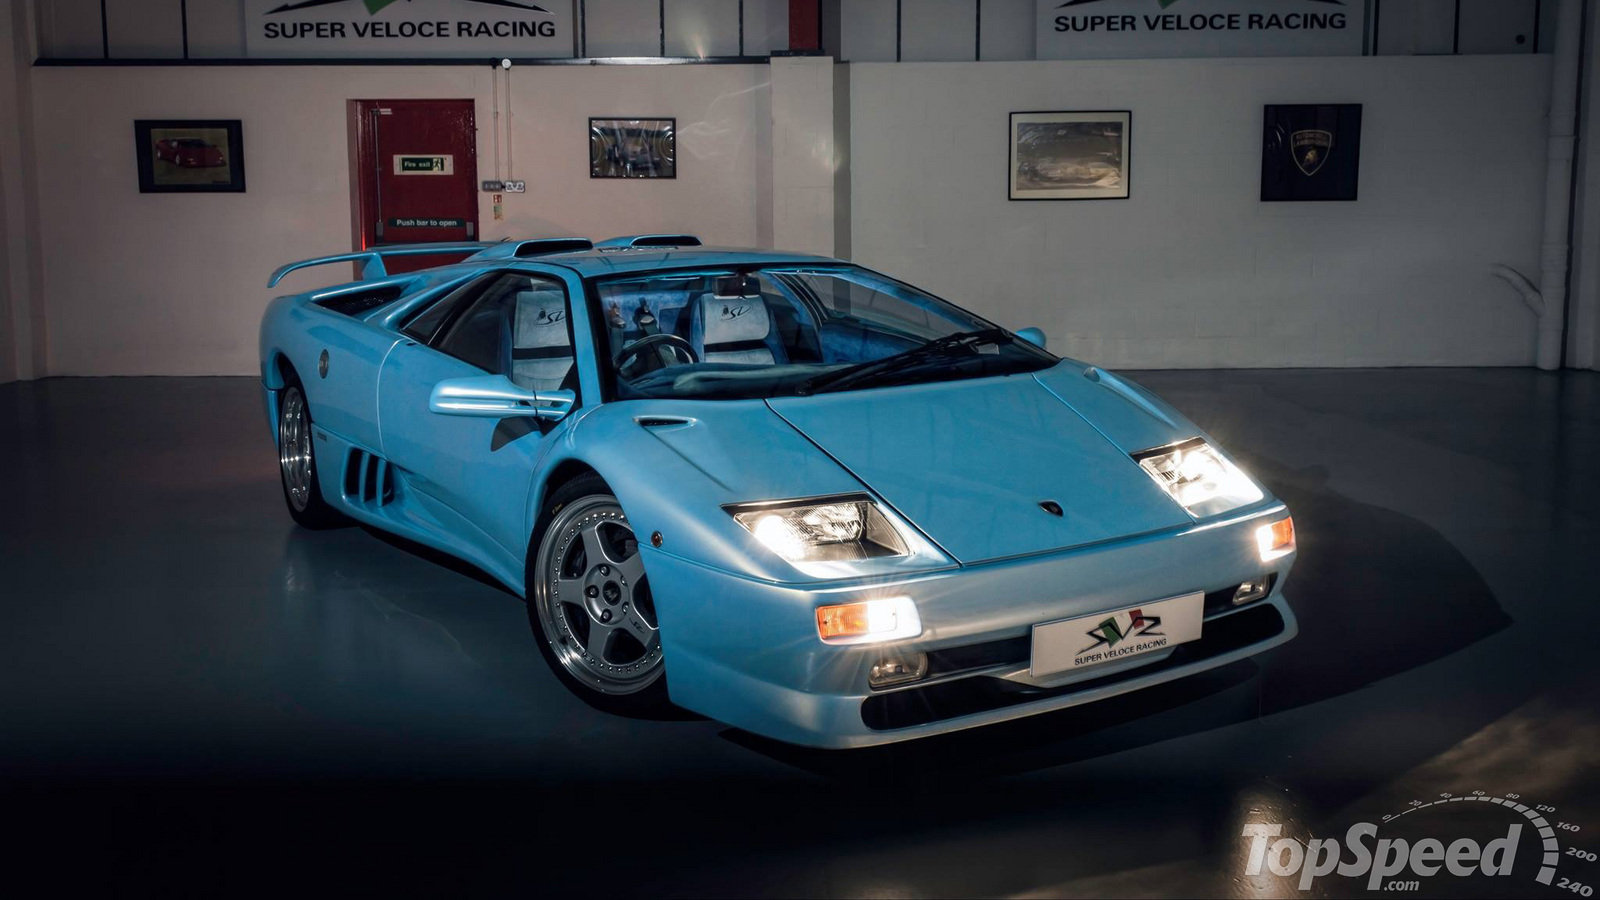 1995 Lamborghini Diablo Sv By Super Veloce Racing Review